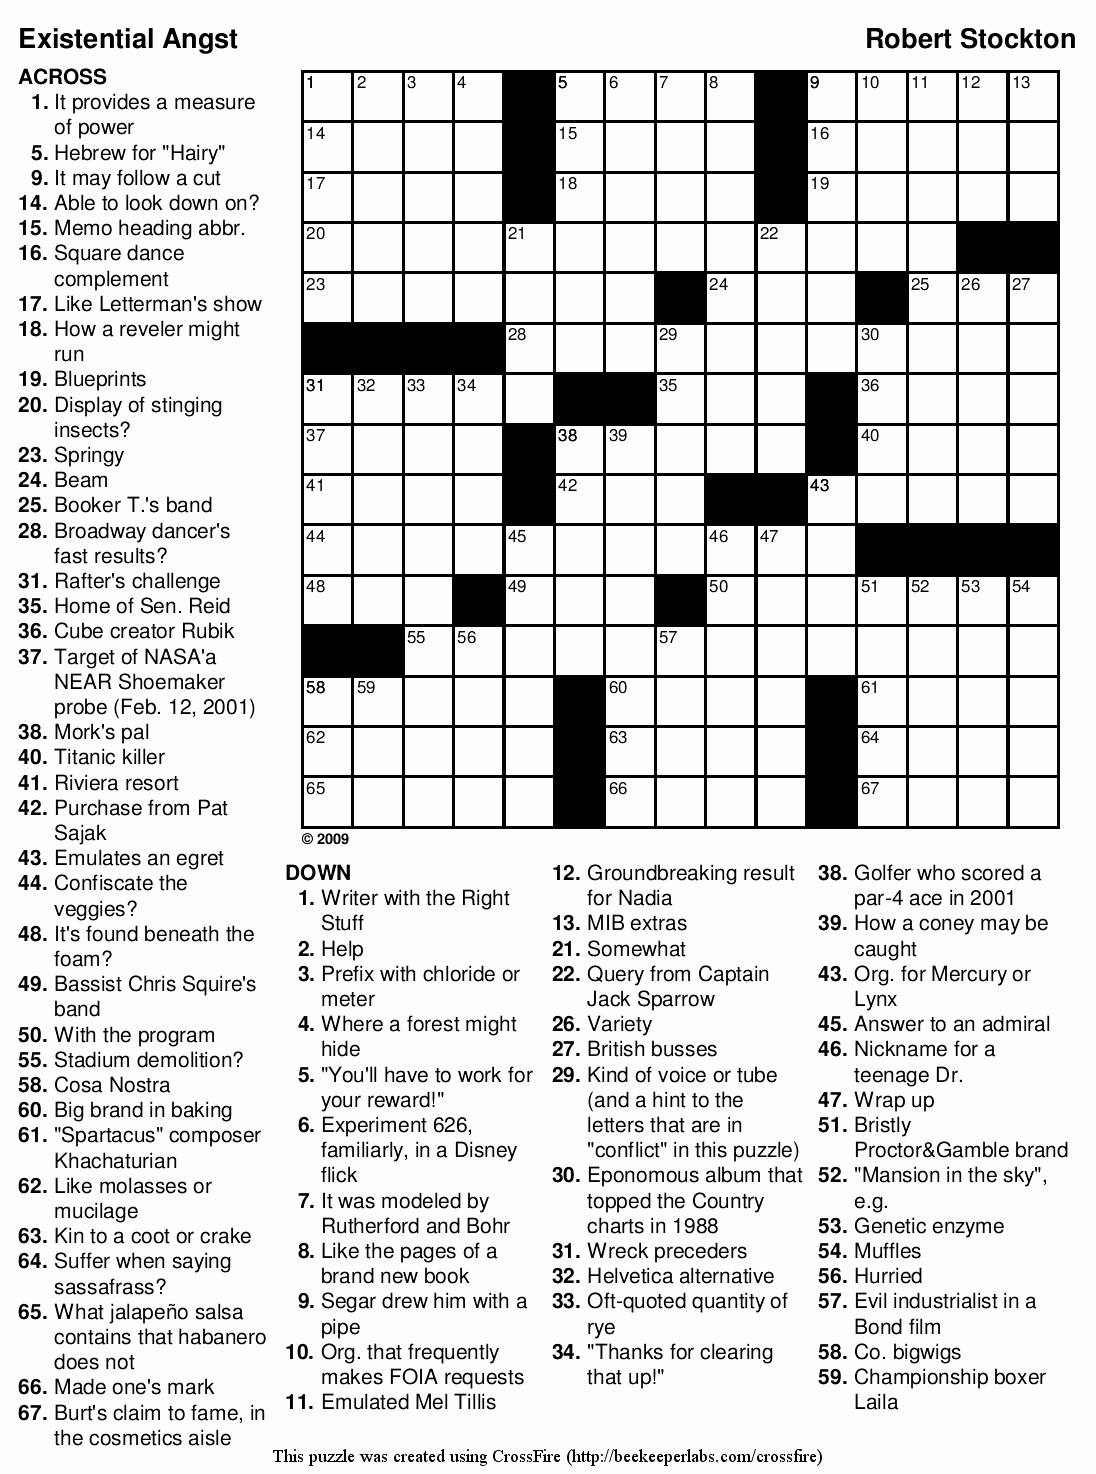 Hard Crossword Puzzles Printable And 8 Best Of Printable Difficult - Printable Difficult Puzzles For Adults